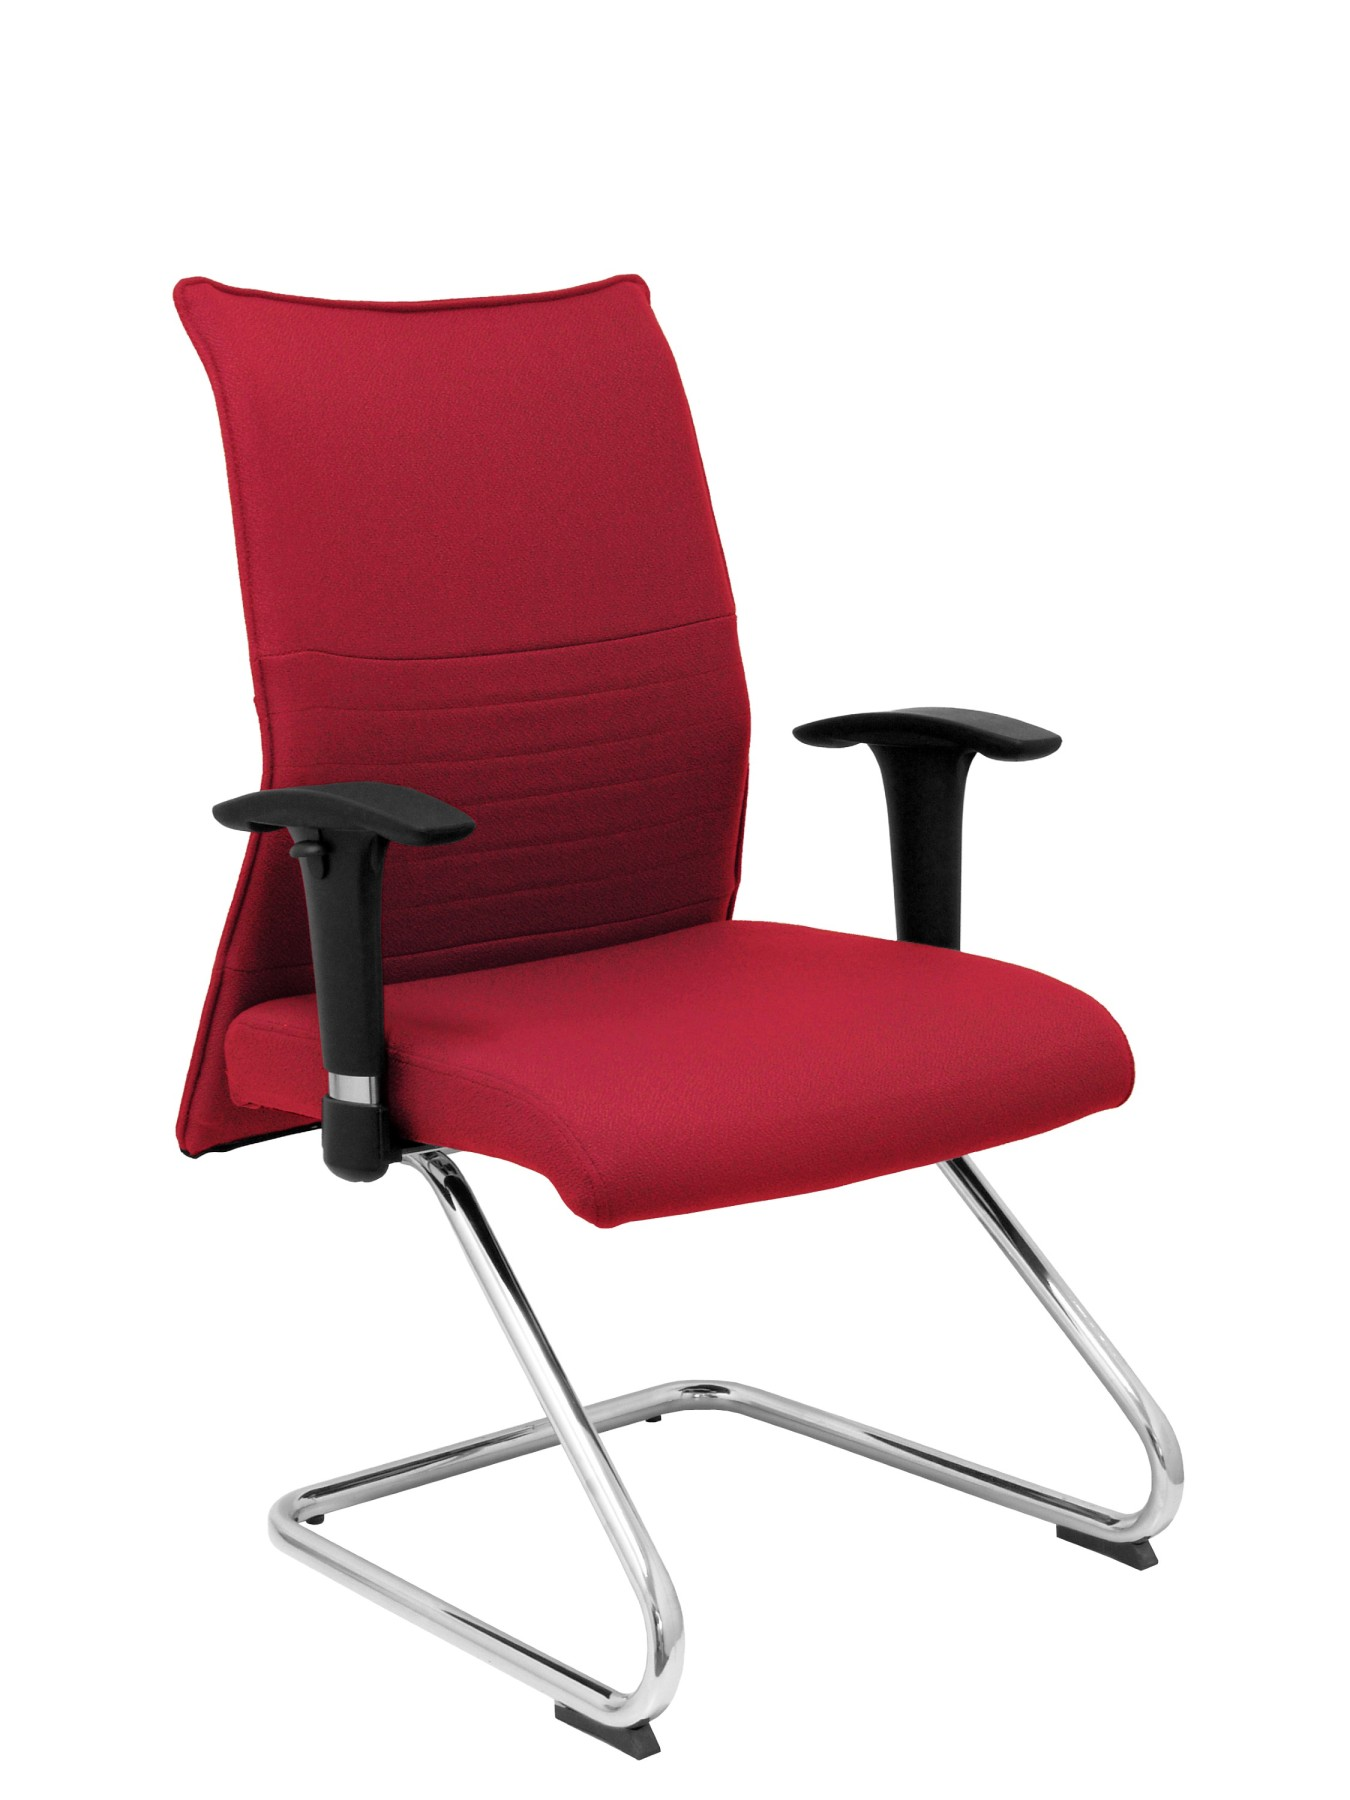 Armchair Confidante Ergonomic For Visits With Skate Chrome Up Seat And Backstop Upholstered In BALI Tissue Color Granat